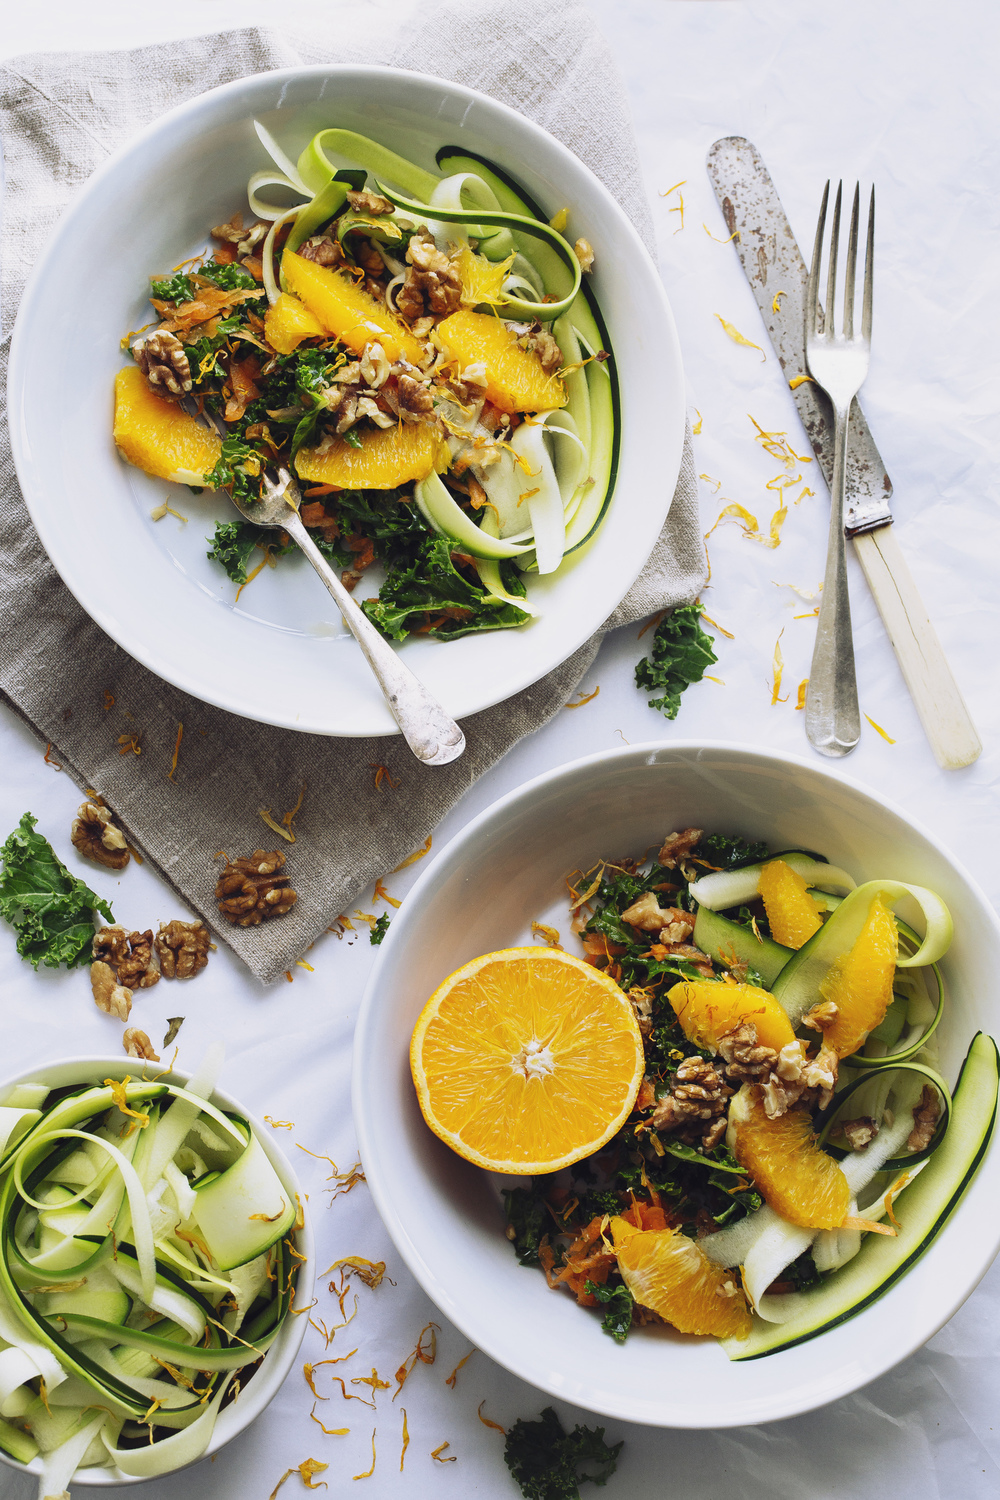 Carrot & Orange Salad with Zucchini Ribbons